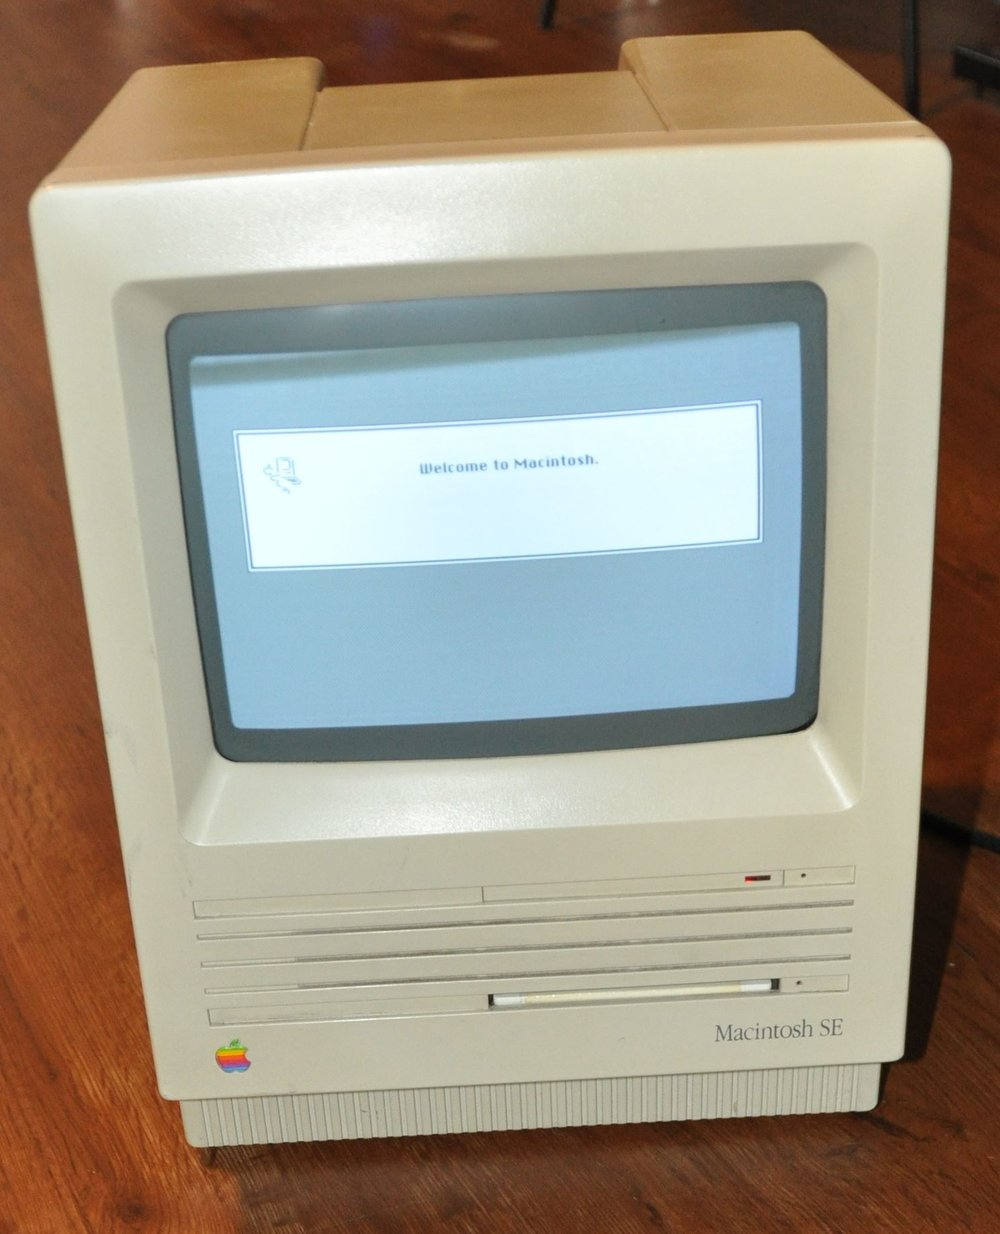 Macintosh SE - the most common of the original Macintosh. These came out a bit later in the game. The Apple II predates these